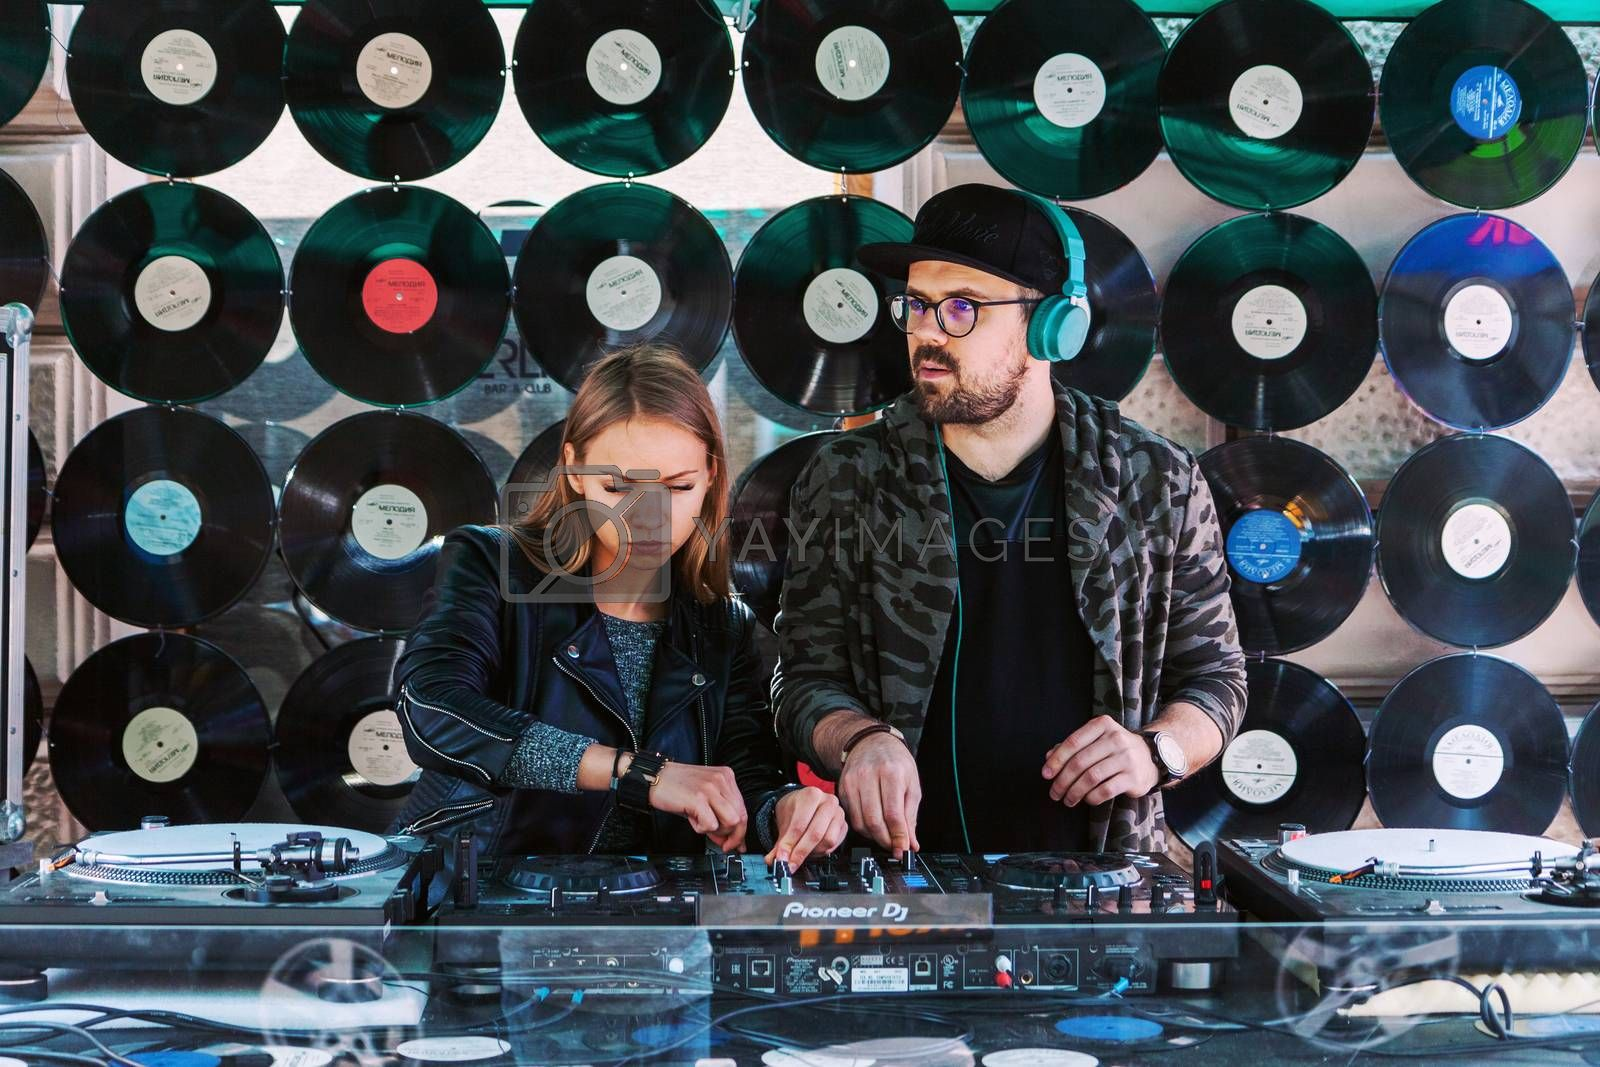 VILNIUS, LITHUANIA - MAY 21, 2016: Pair of young DJ mixing music on the street in Vilnius, Lithuania